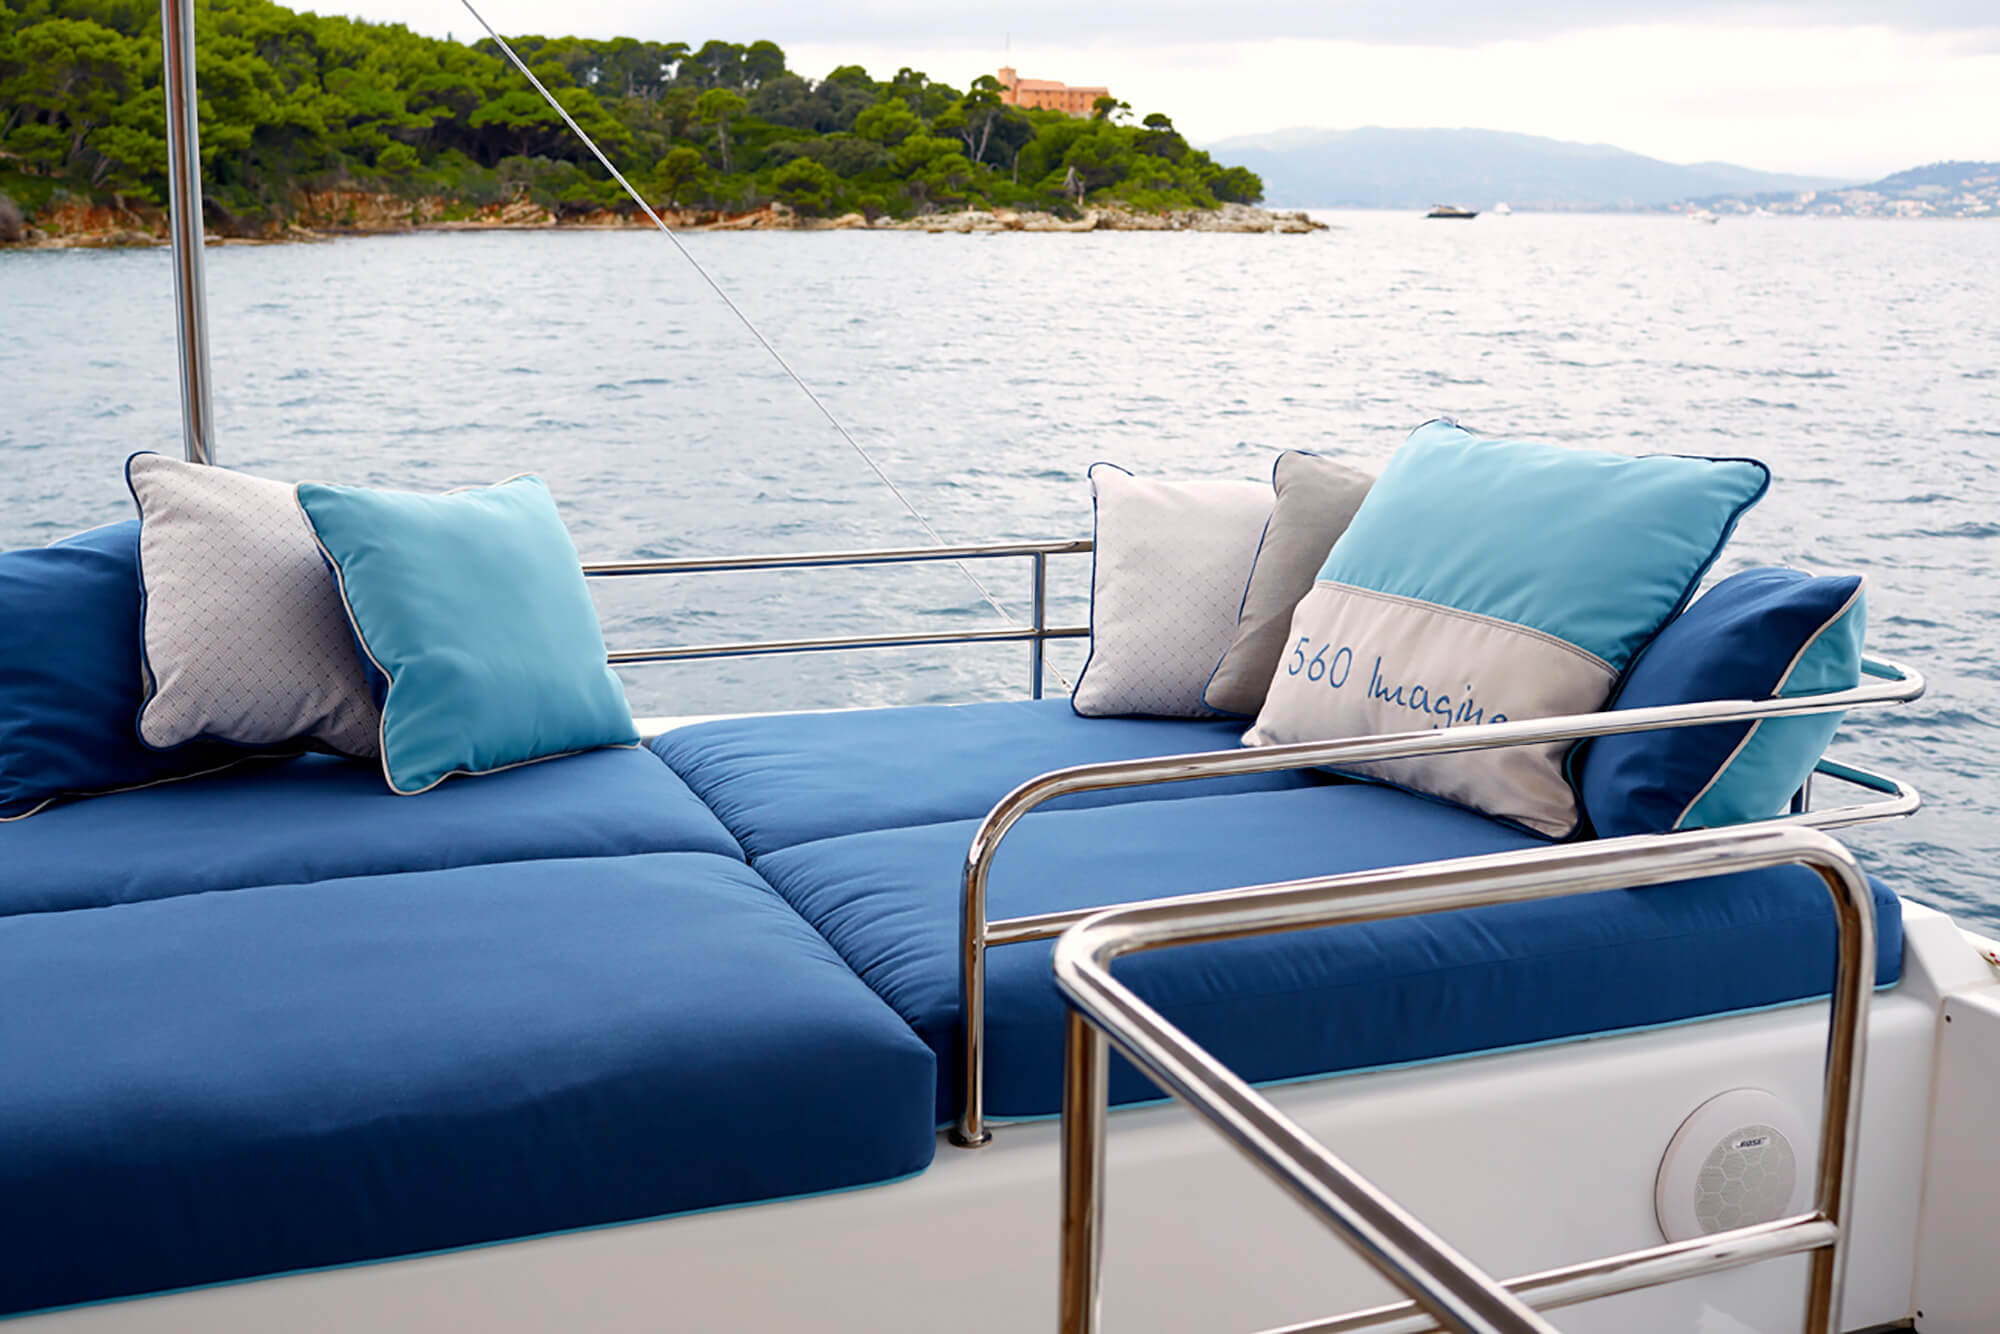 Blue cushions and pillows made using Sunbrella fabric with water scenery in background